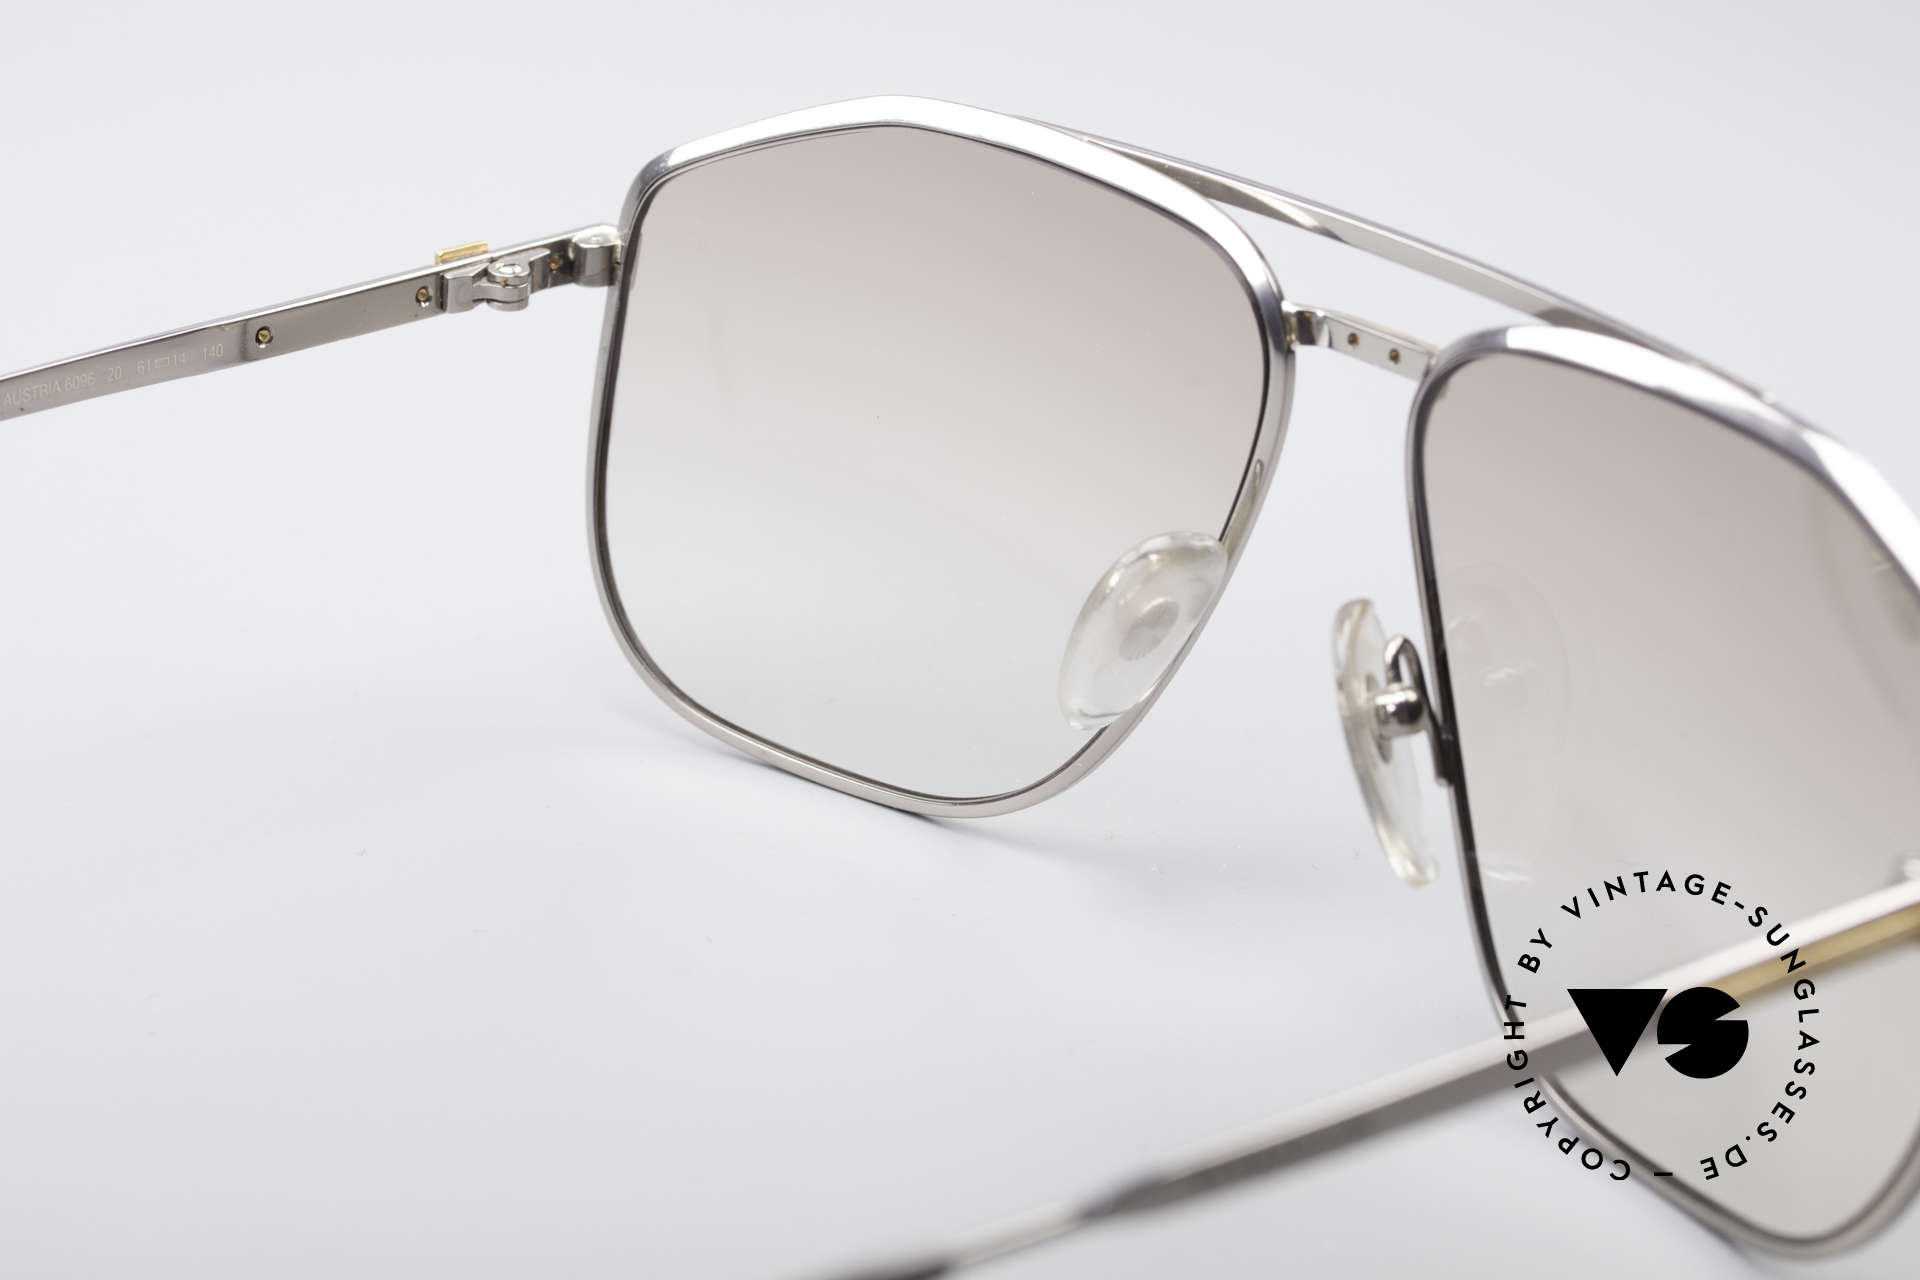 Dunhill 6096 Titanium Frame 18ct Solid Gold, unworn rarity (like all our A. Dunhill vintage sunglasses), Made for Men